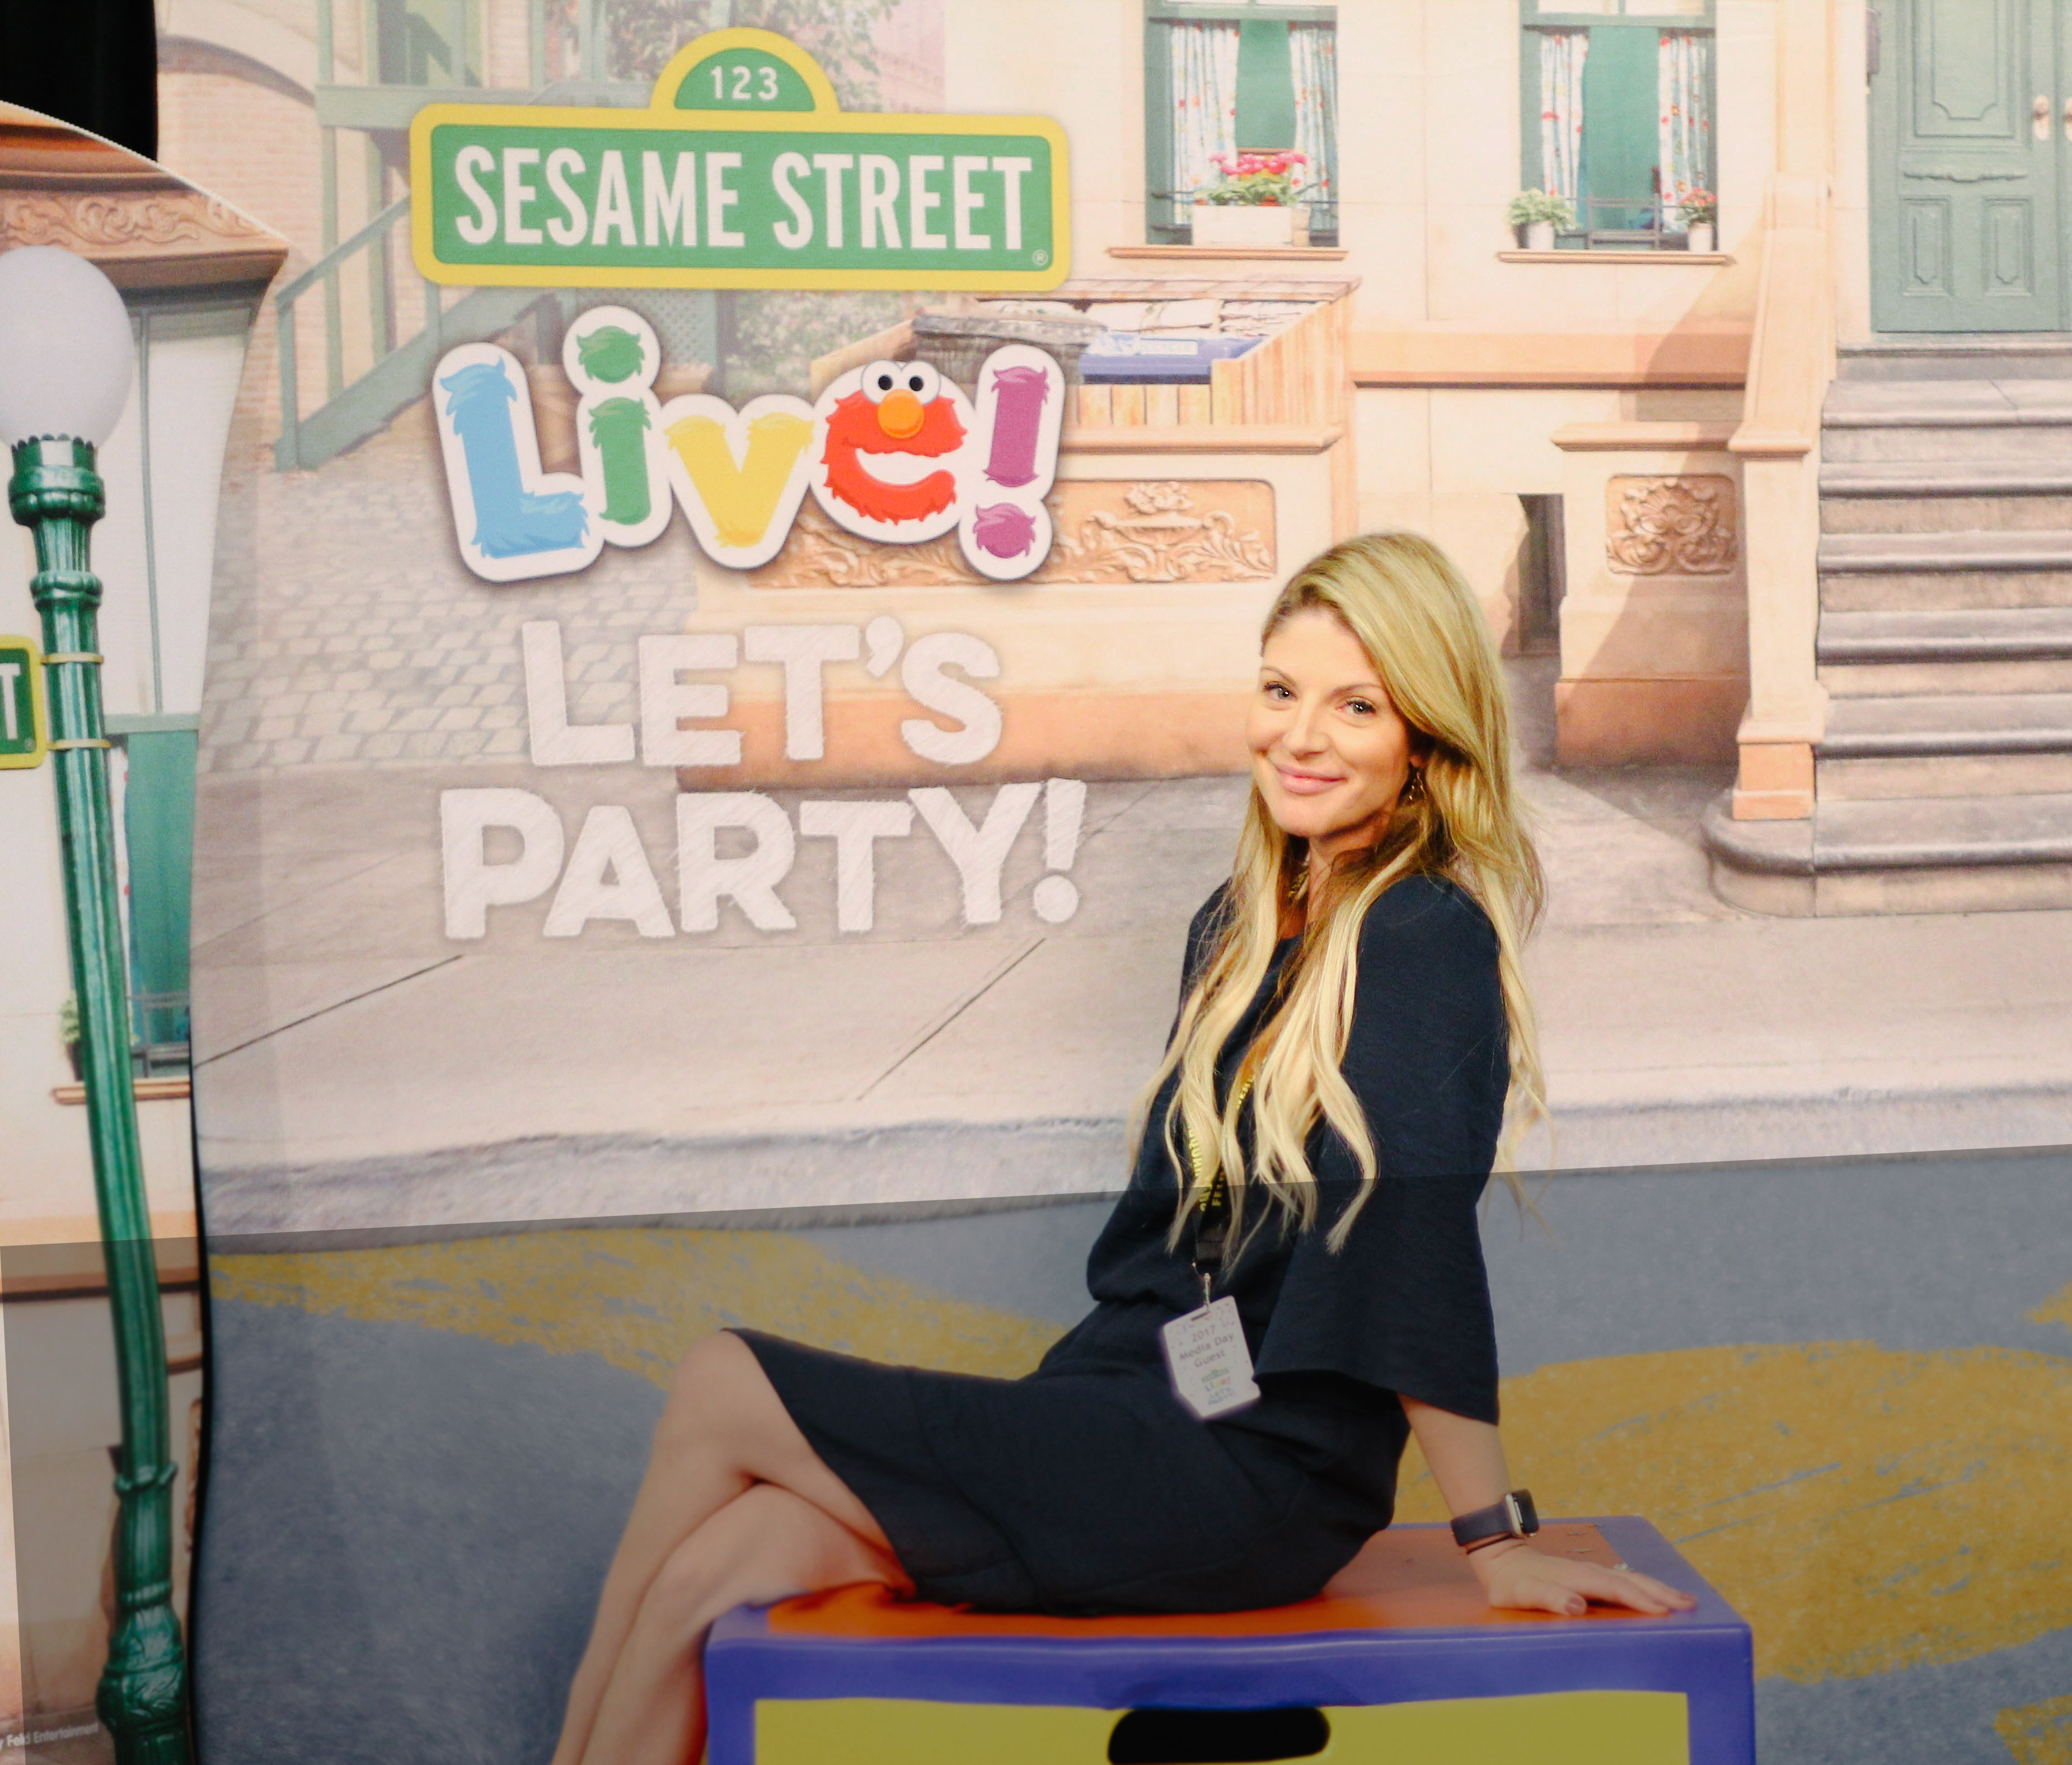 Sesame Street Live Let's Party is Fun for the Whole Family!